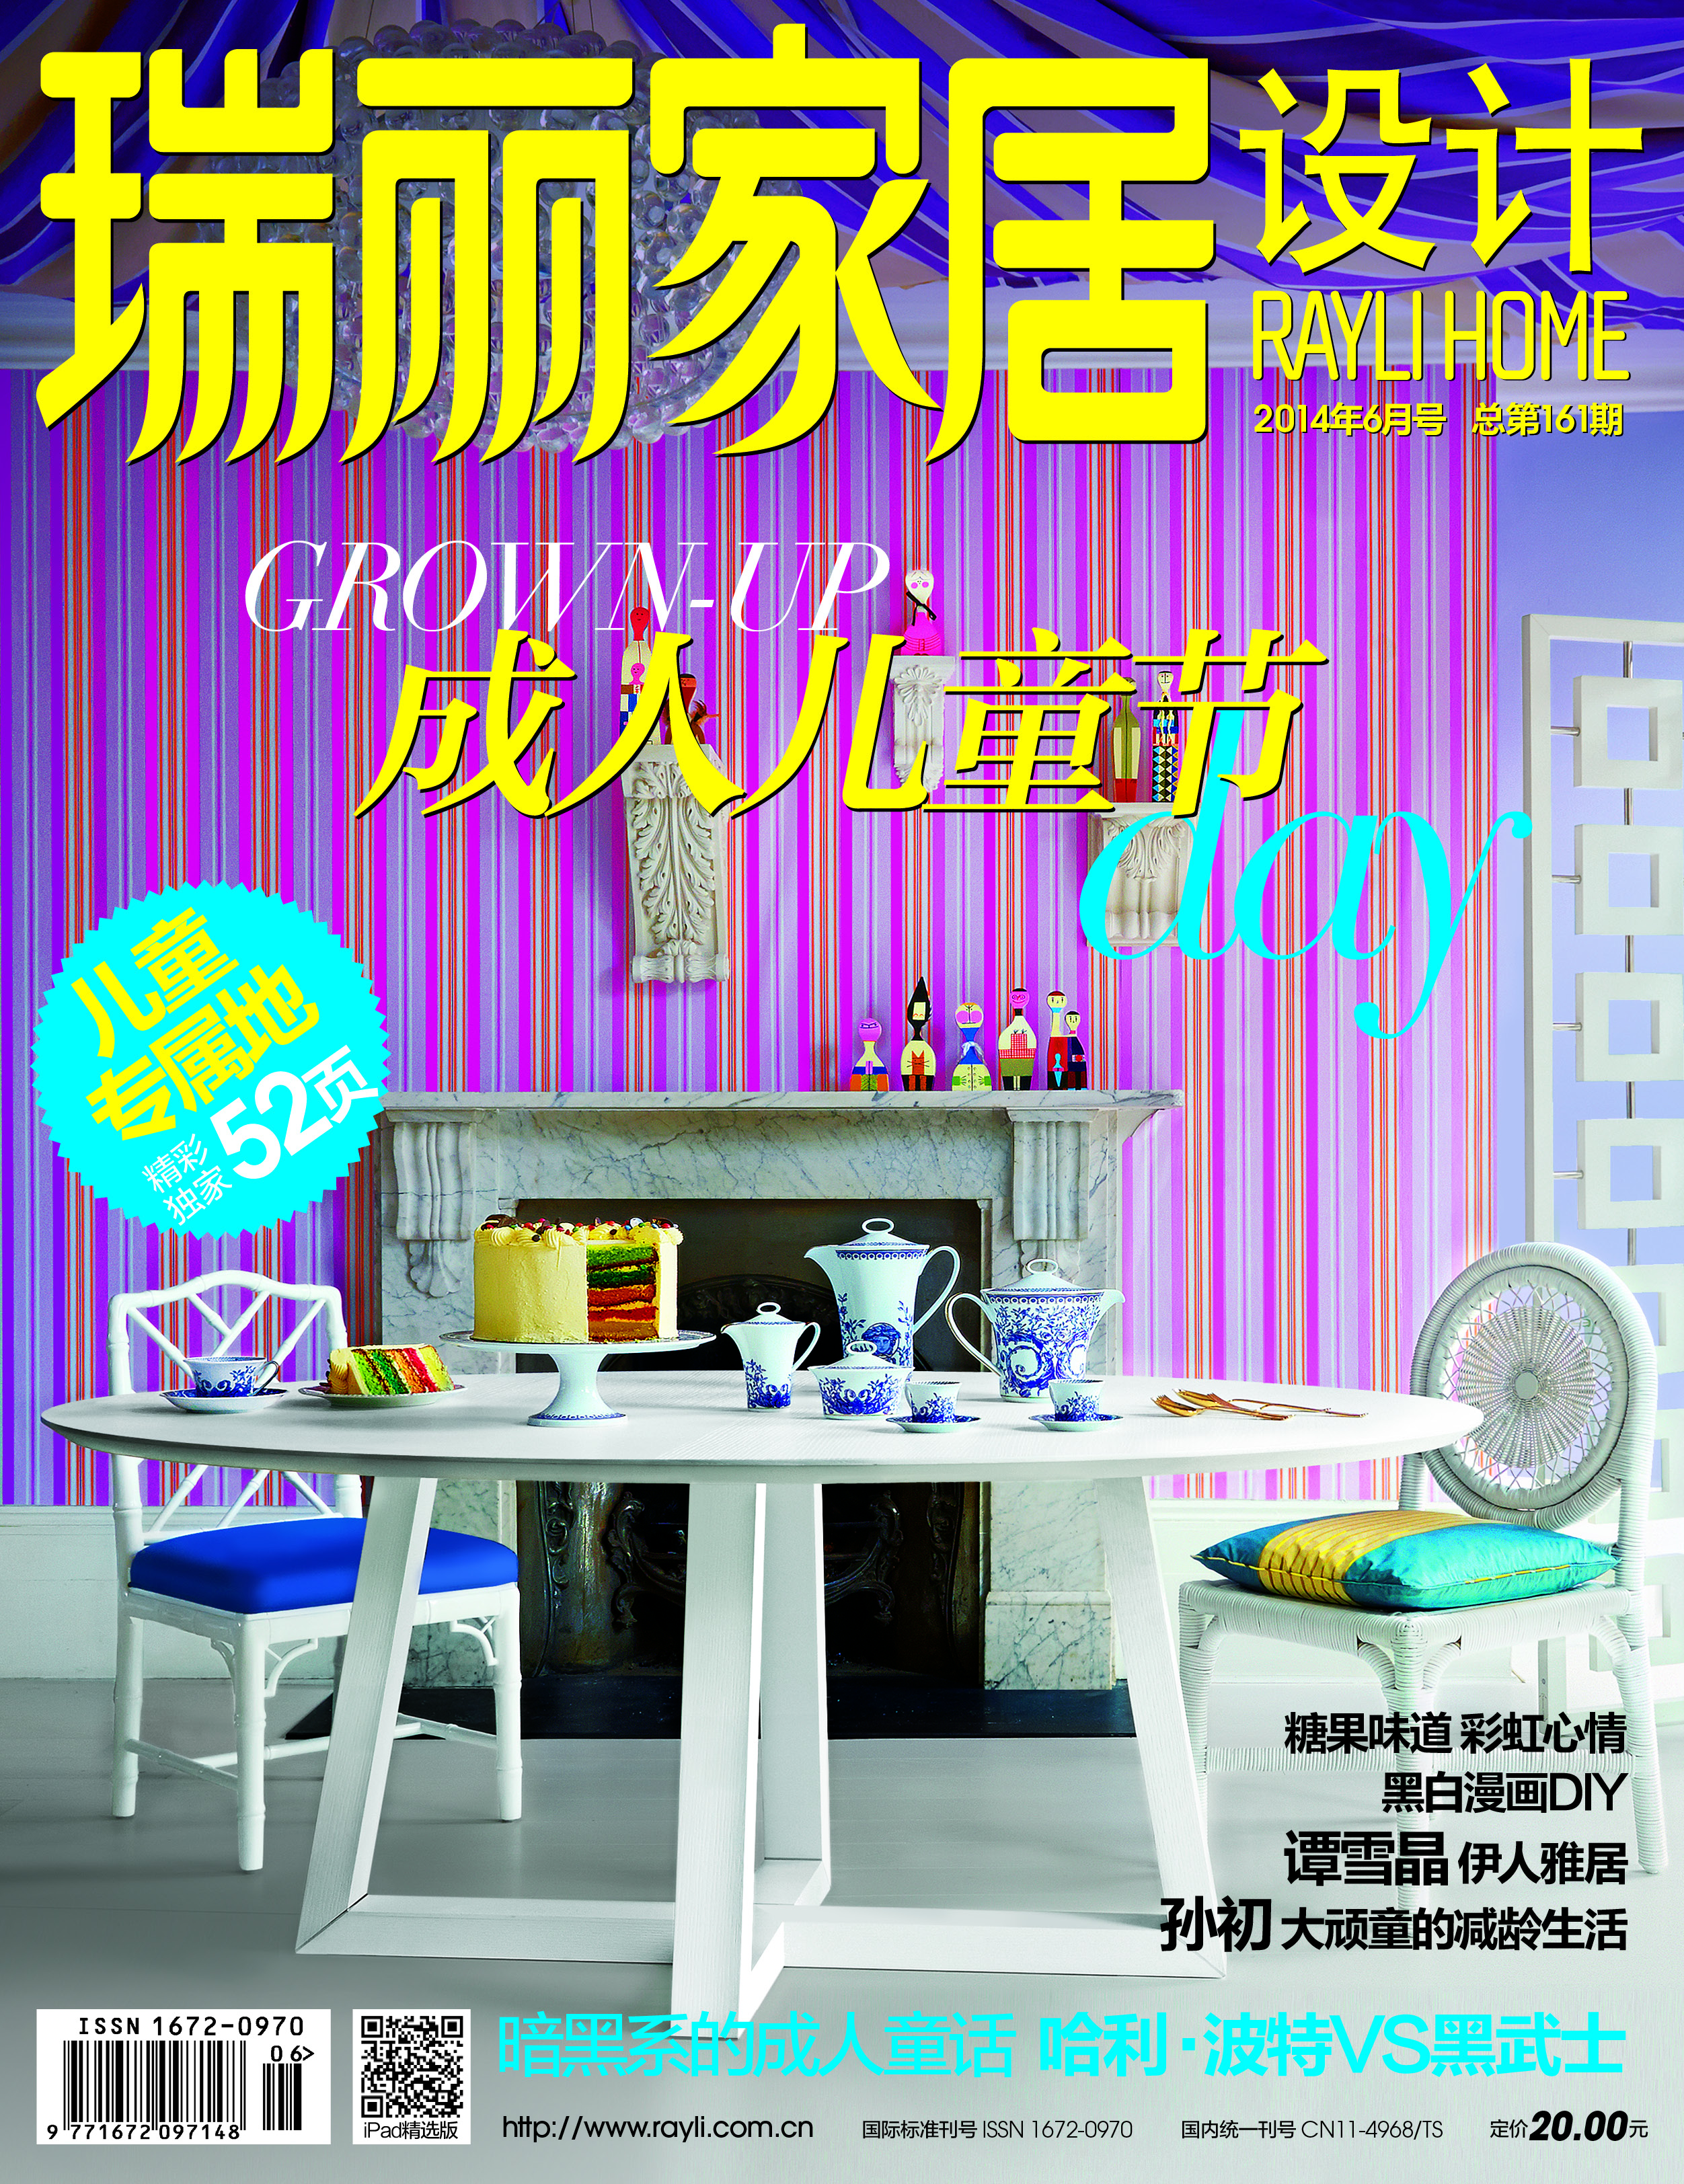 Rayli Home June Issue Cover